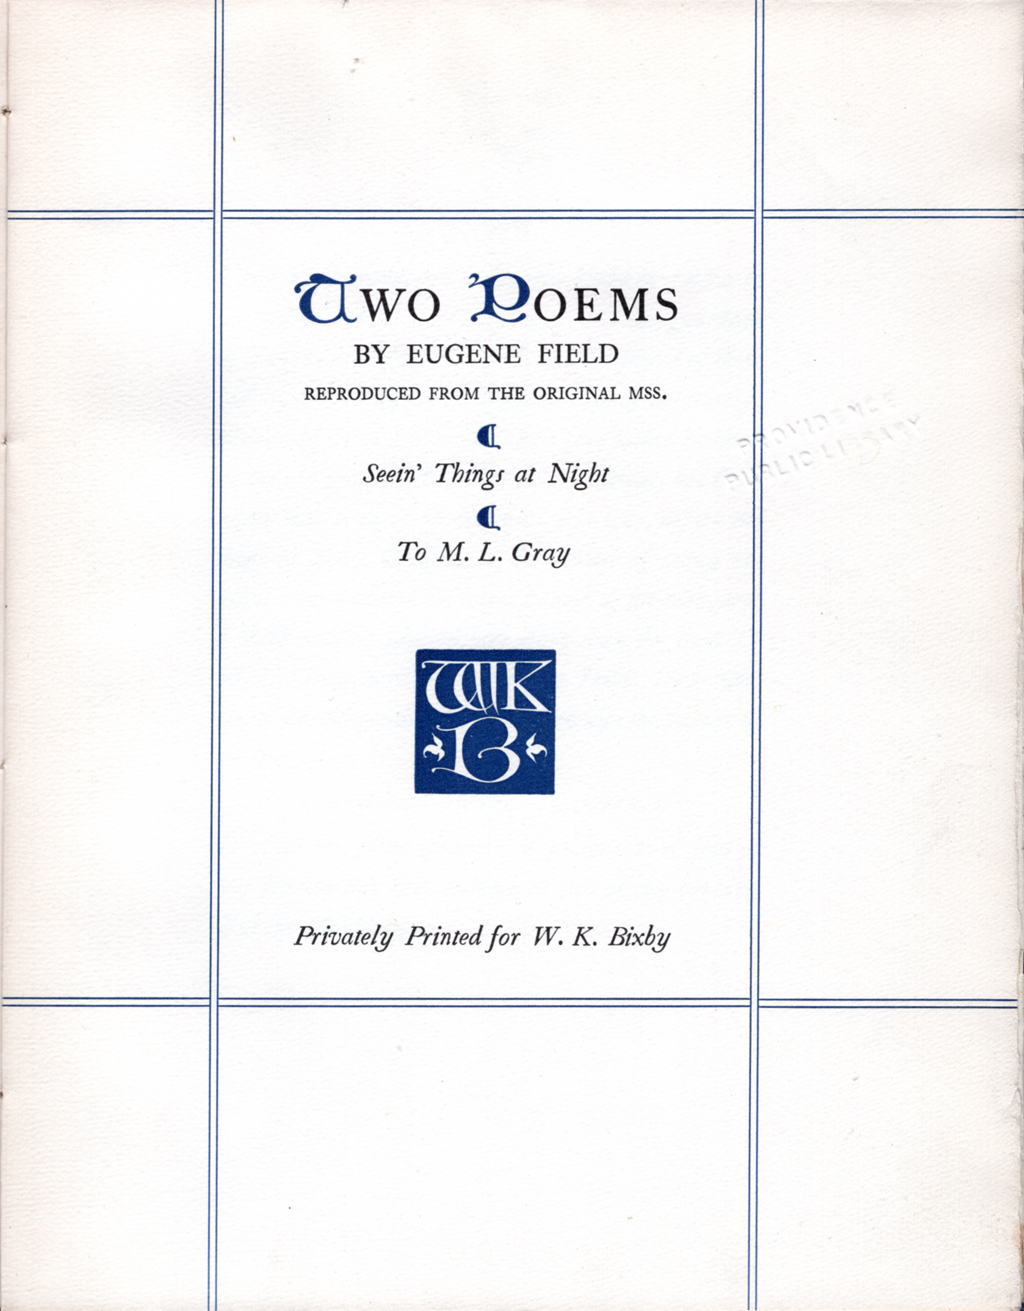 Title page of Two Poems by Eugene Field (Boston: The Merrymount Press, 1922). Monogram by W.A. Dwiggins.